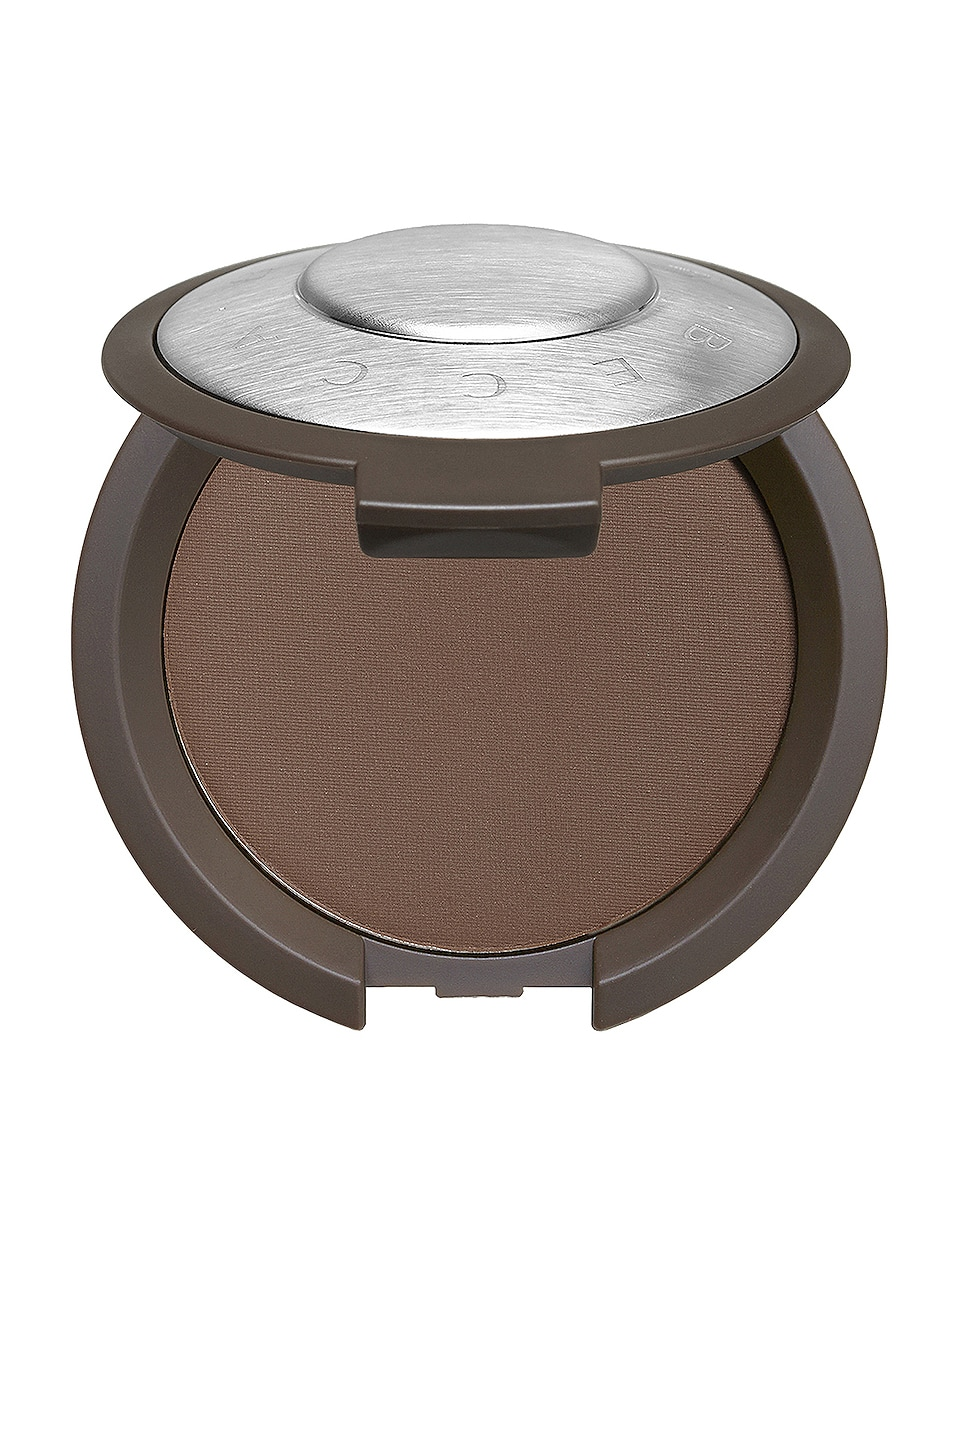 BECCA Multi Tasking Perfecting Powder in Deep Bronze